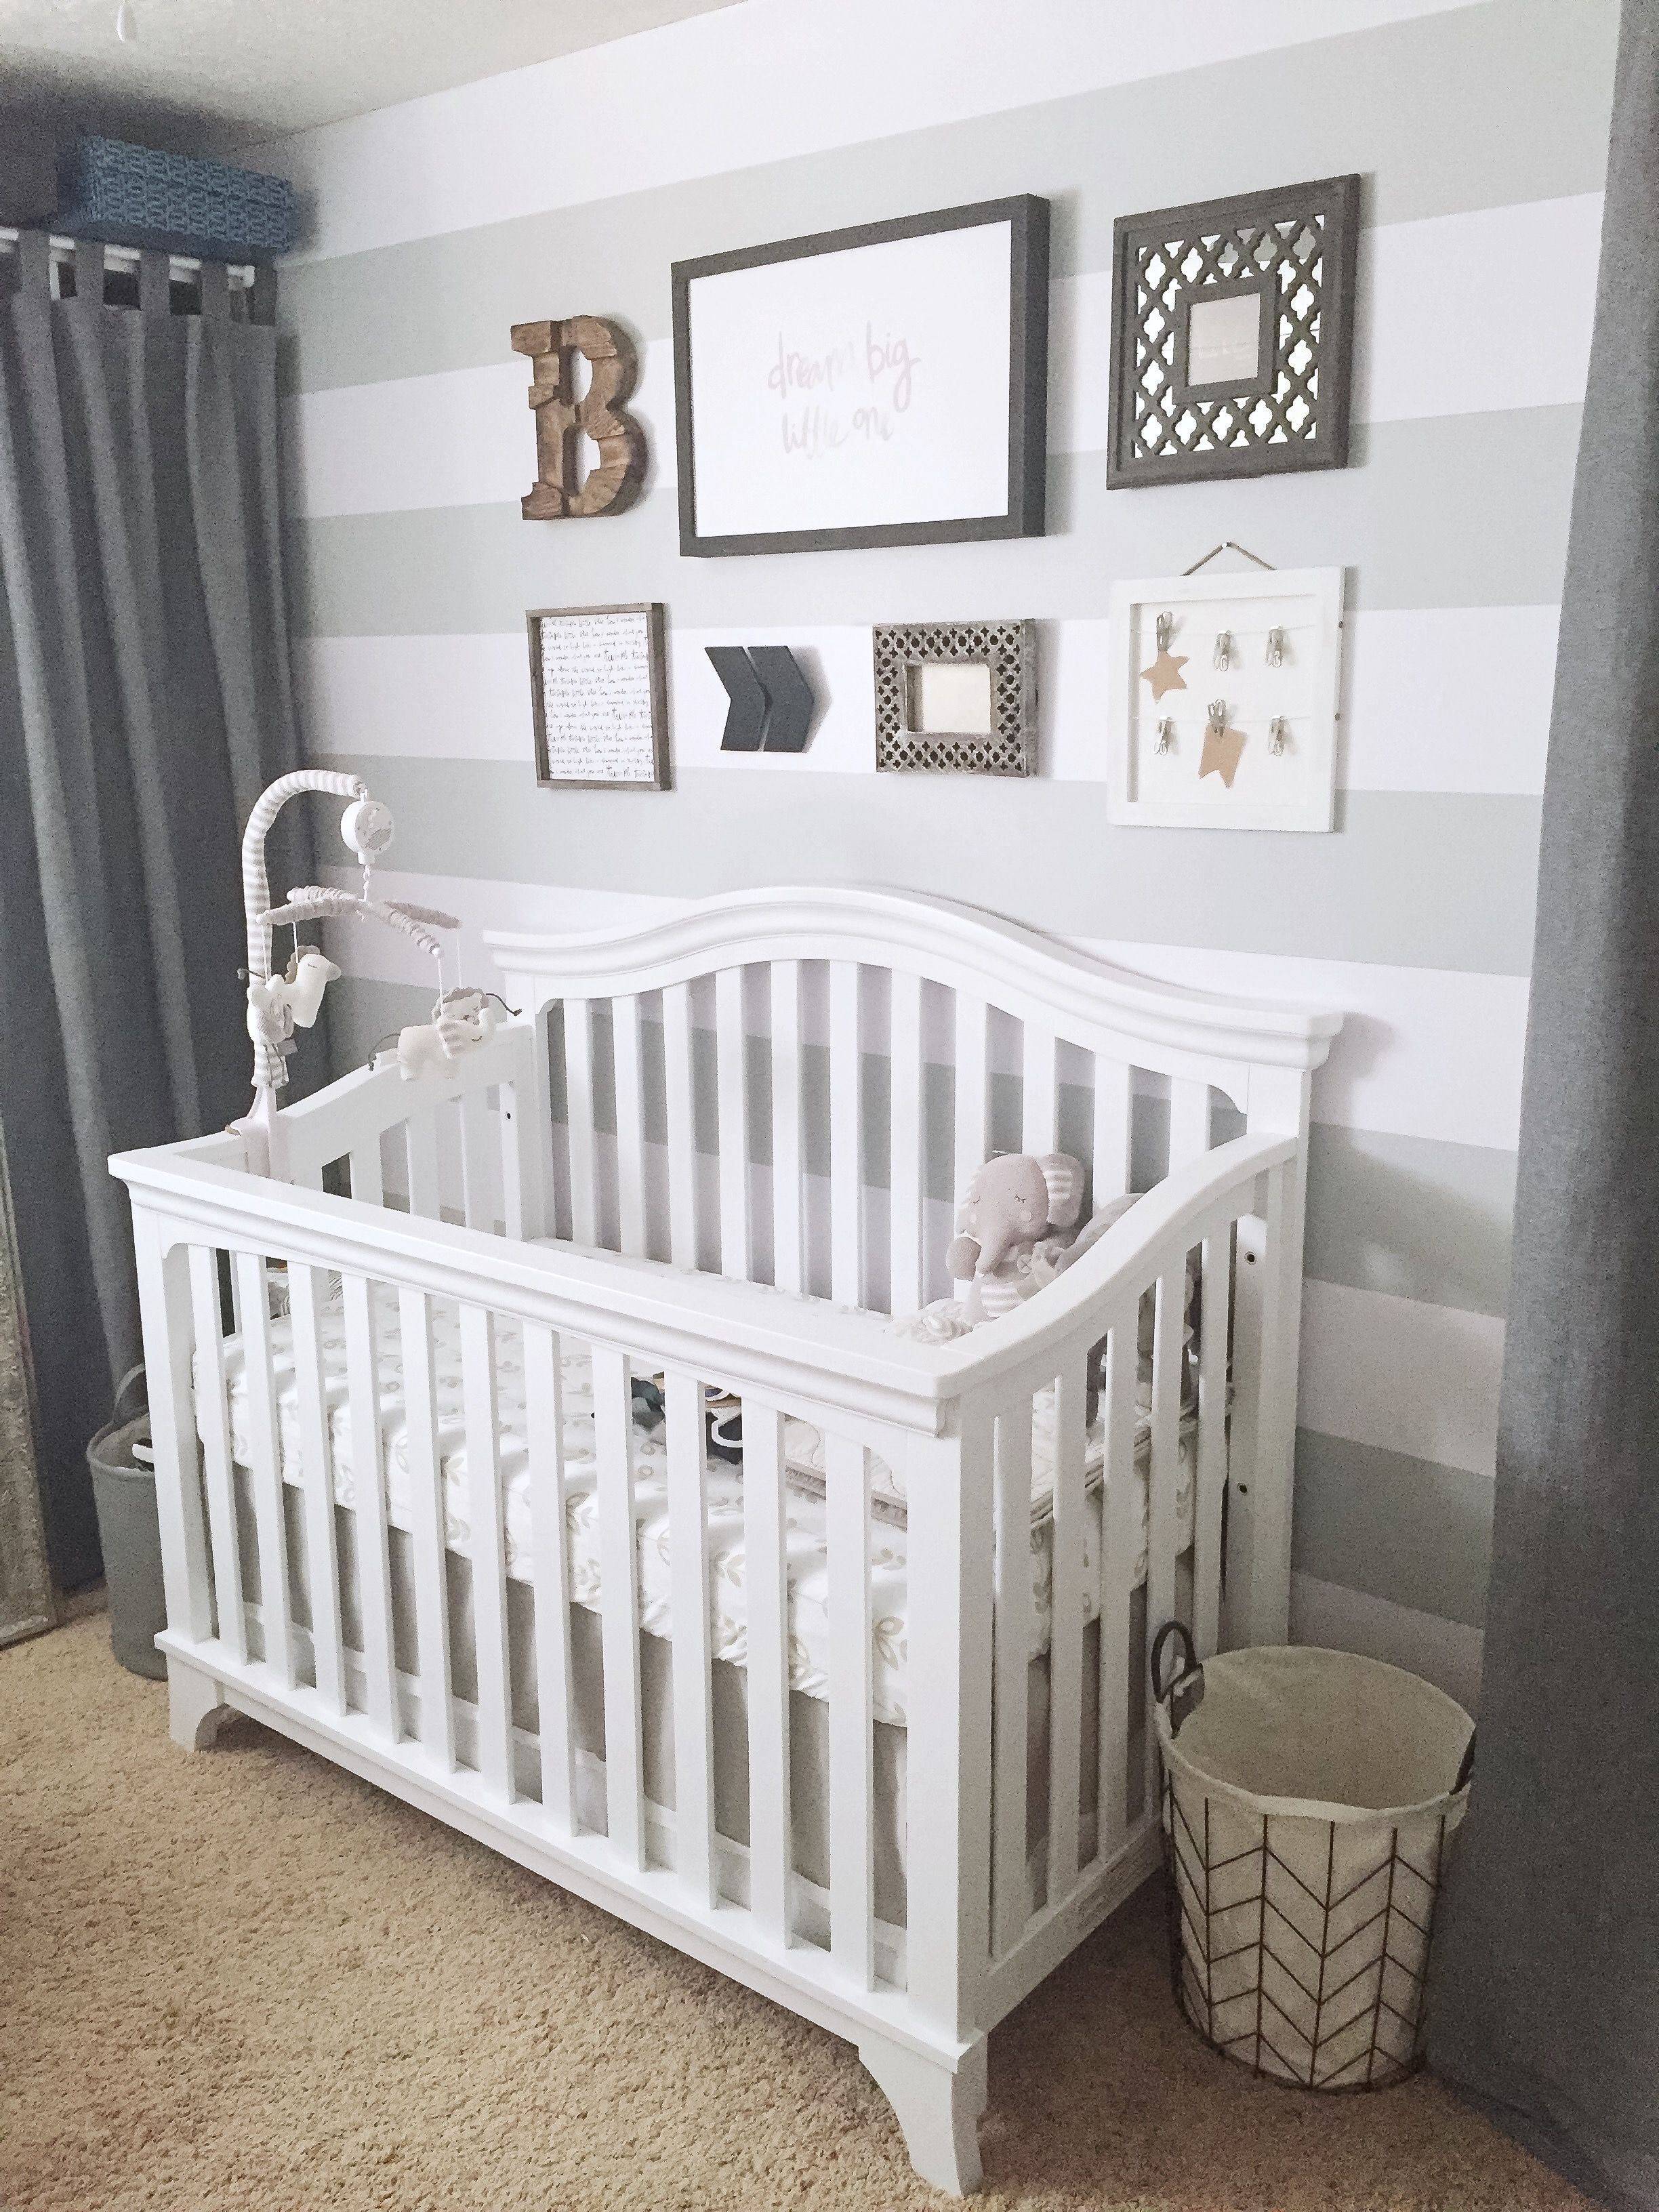 How To Transform A Small Room Into The Perfect Baby Nursery With